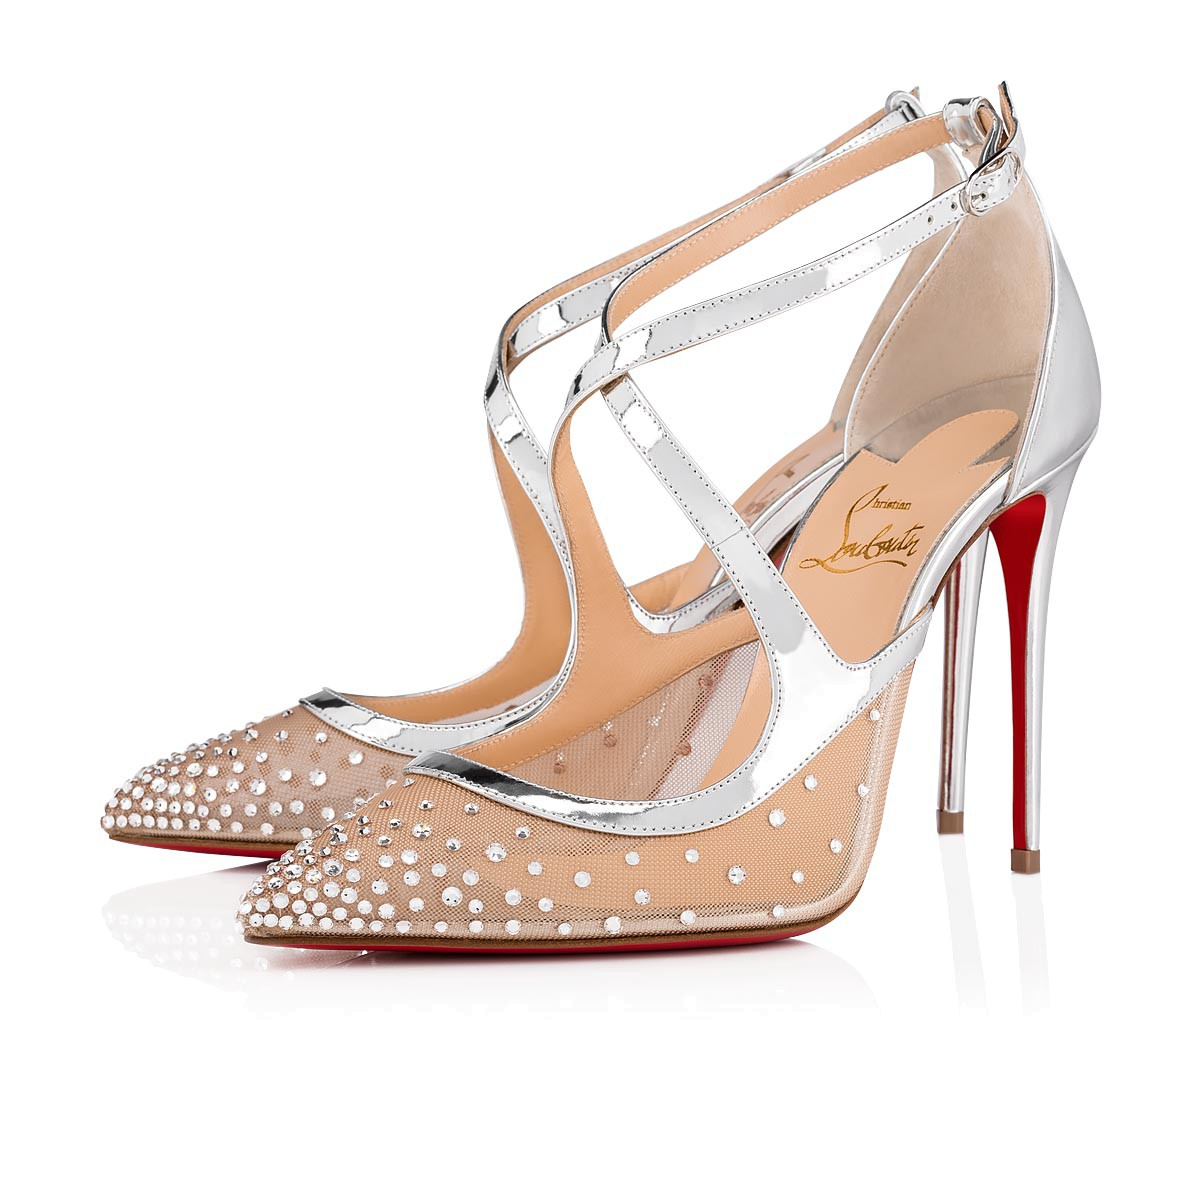 Shoes - Twistissima Strass - Christian Louboutin